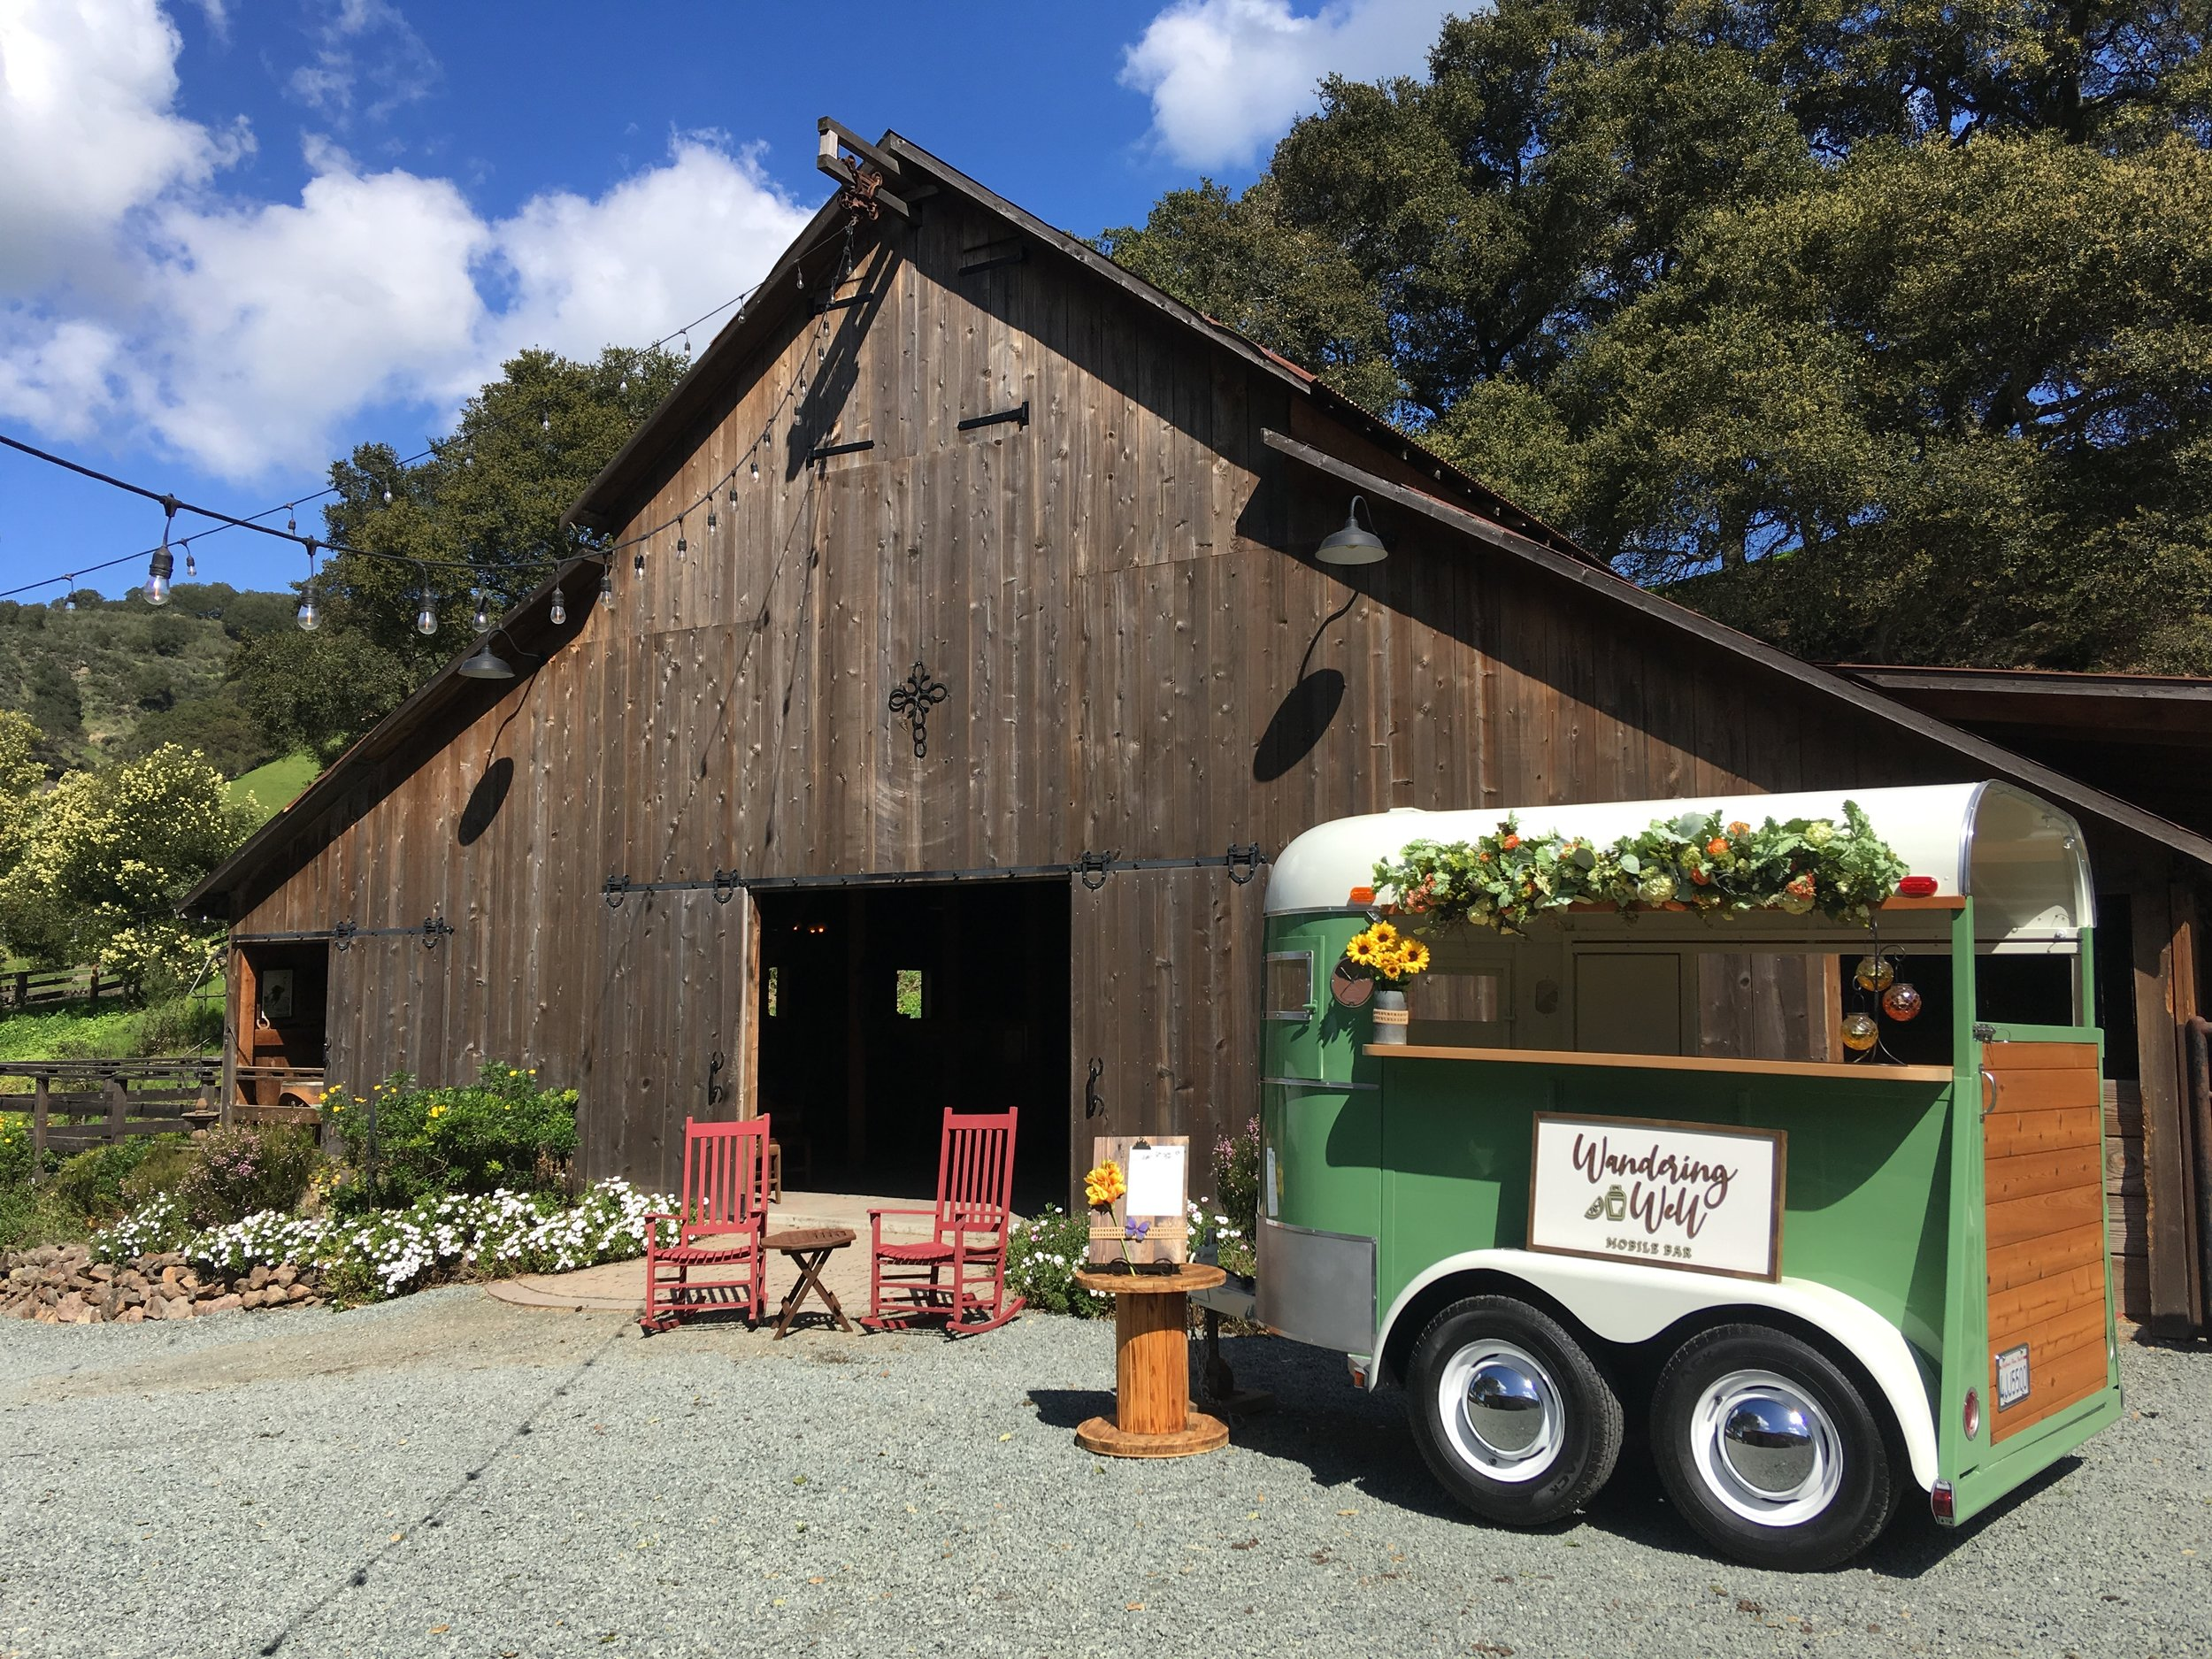 Meet Welma: - She's our vintage horse trailer bar who resides in Pleasanton, CA but happily travels to private events throughout the Bay Area. She feels right at home visiting the stunning JBL Home Ranch in Briones, CA.